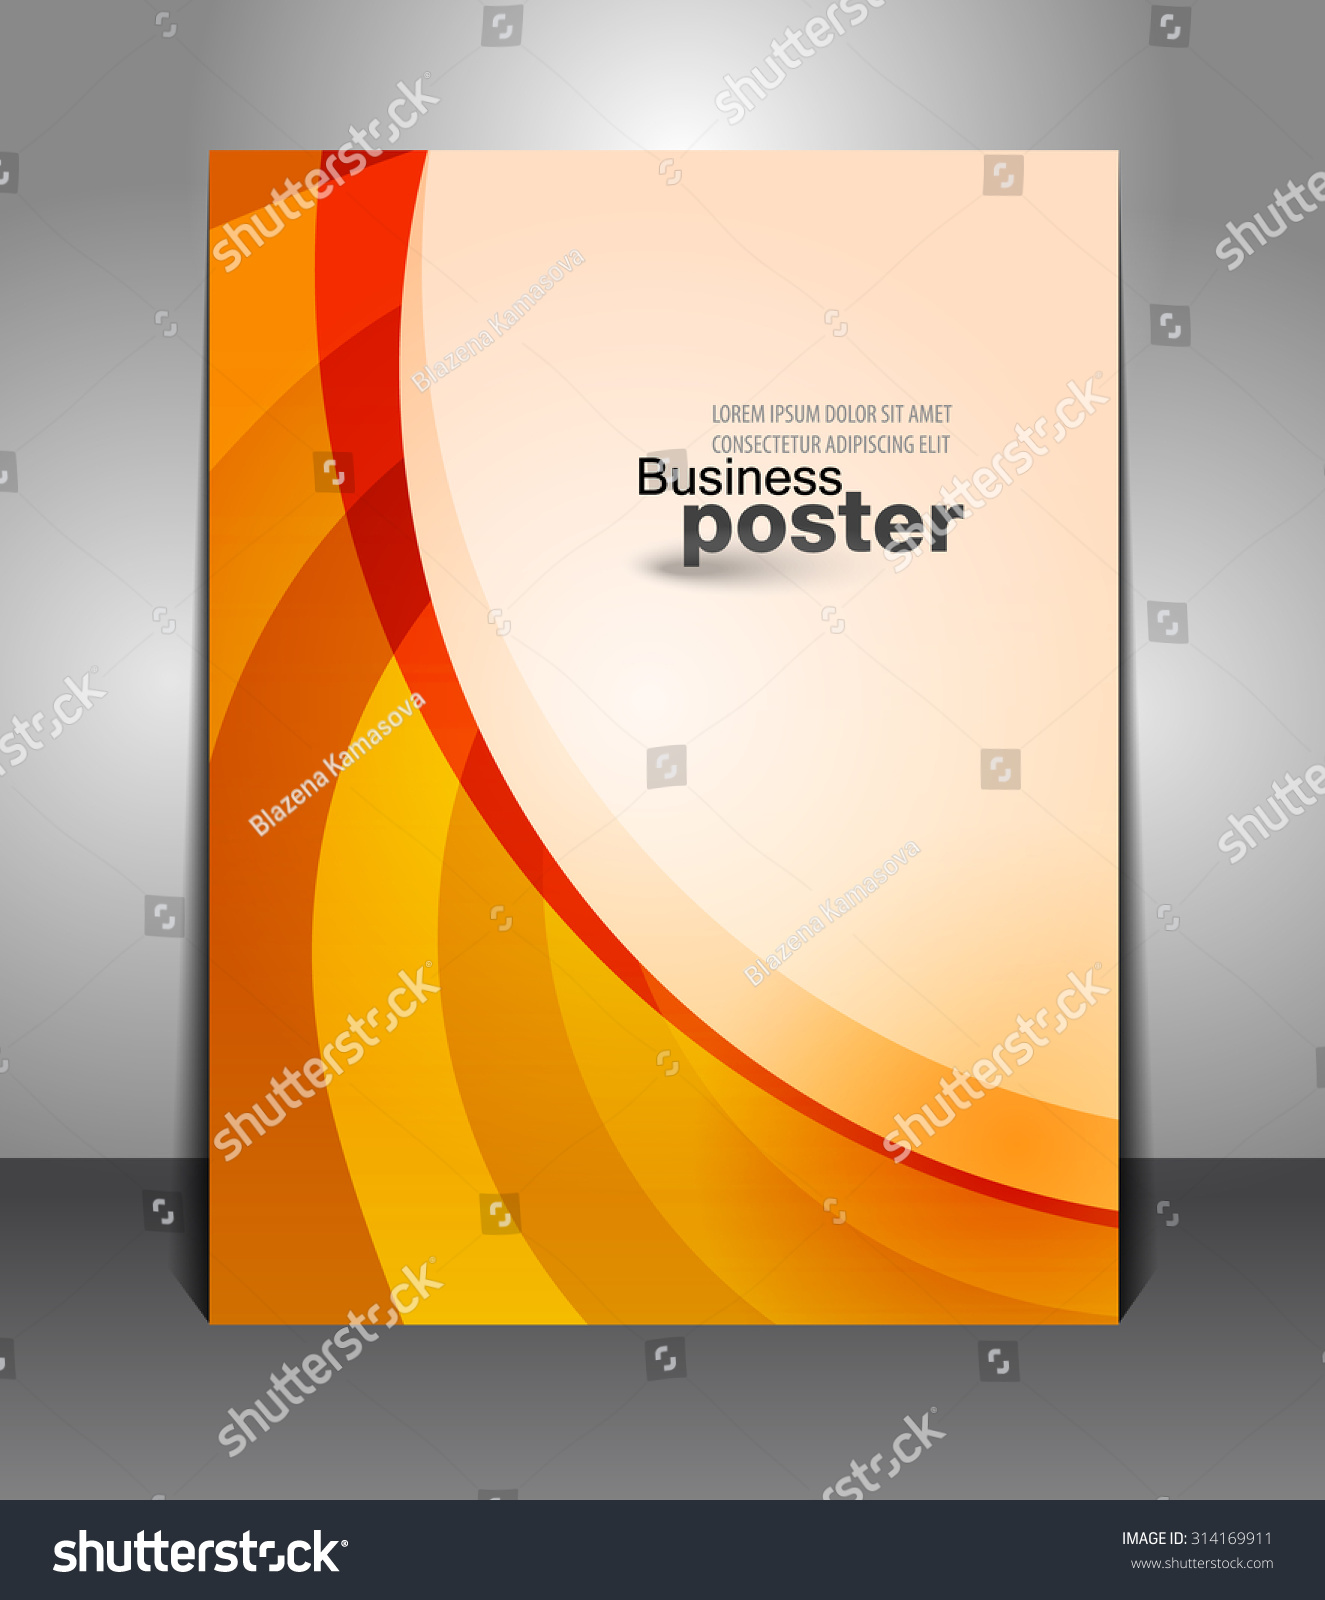 Poster design template - Gallery Photos Of Corporate Poster Design Templates Click To Download